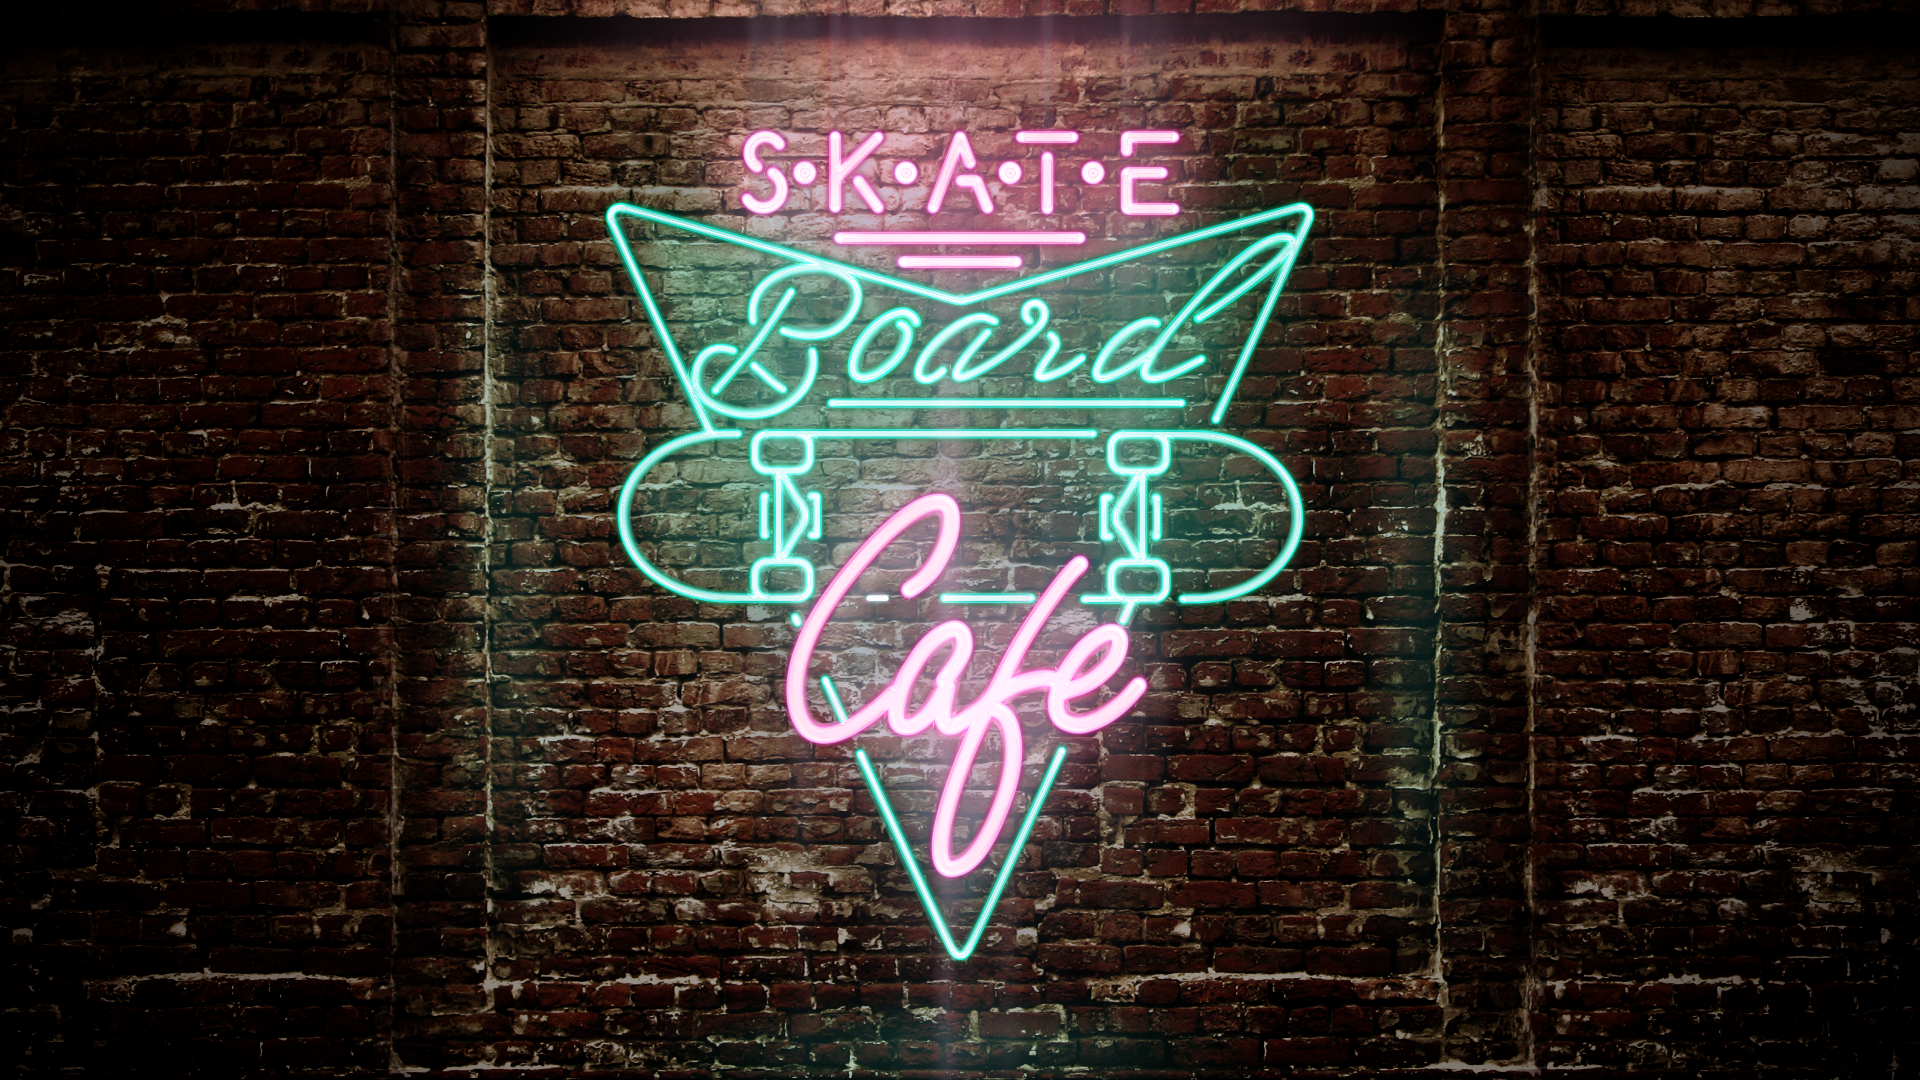 2015-05-Skate-Cafe-logo-writes-on-wall-cam-move